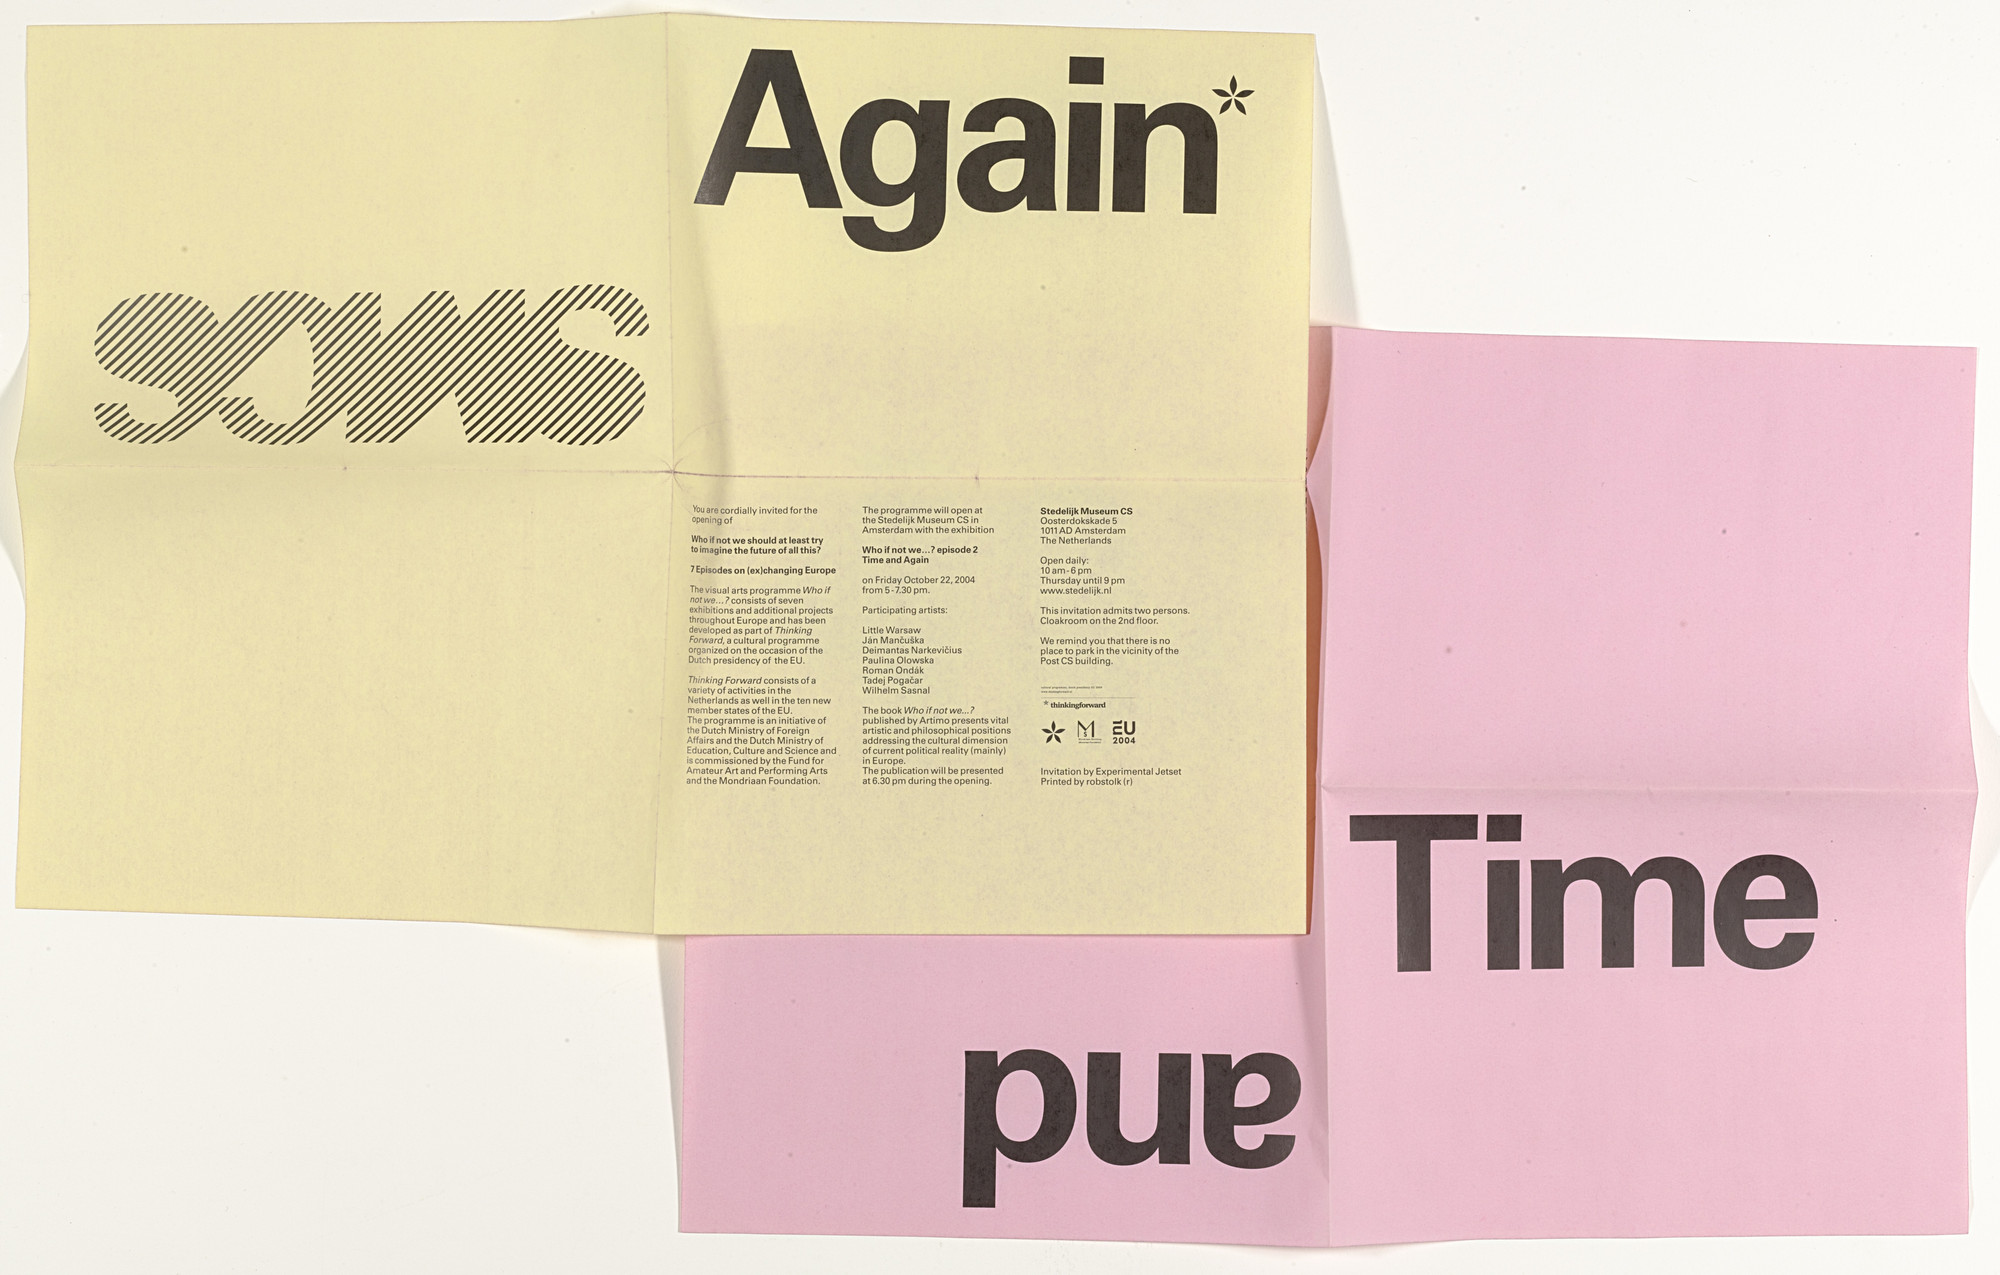 Experimental Jetset. SMCS Time and Again Exhibition Opening Invitation. 2004